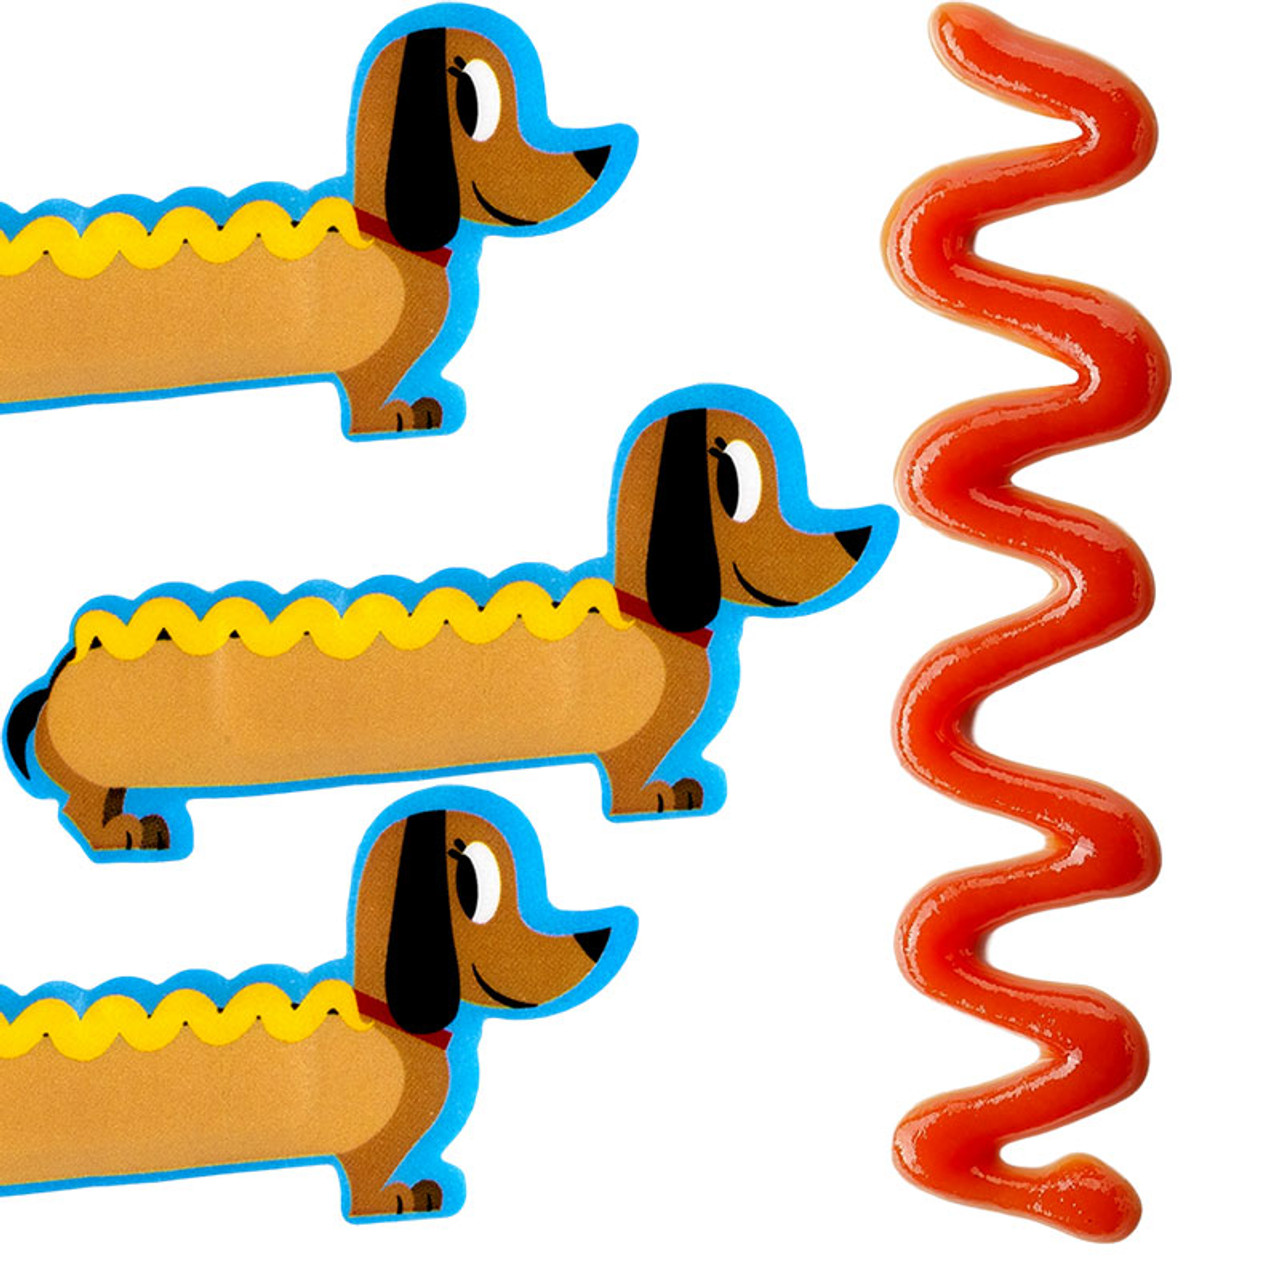 Hot Dog Bandages  - We're going to be frank, our Hot Dog Bandages are real wieners!